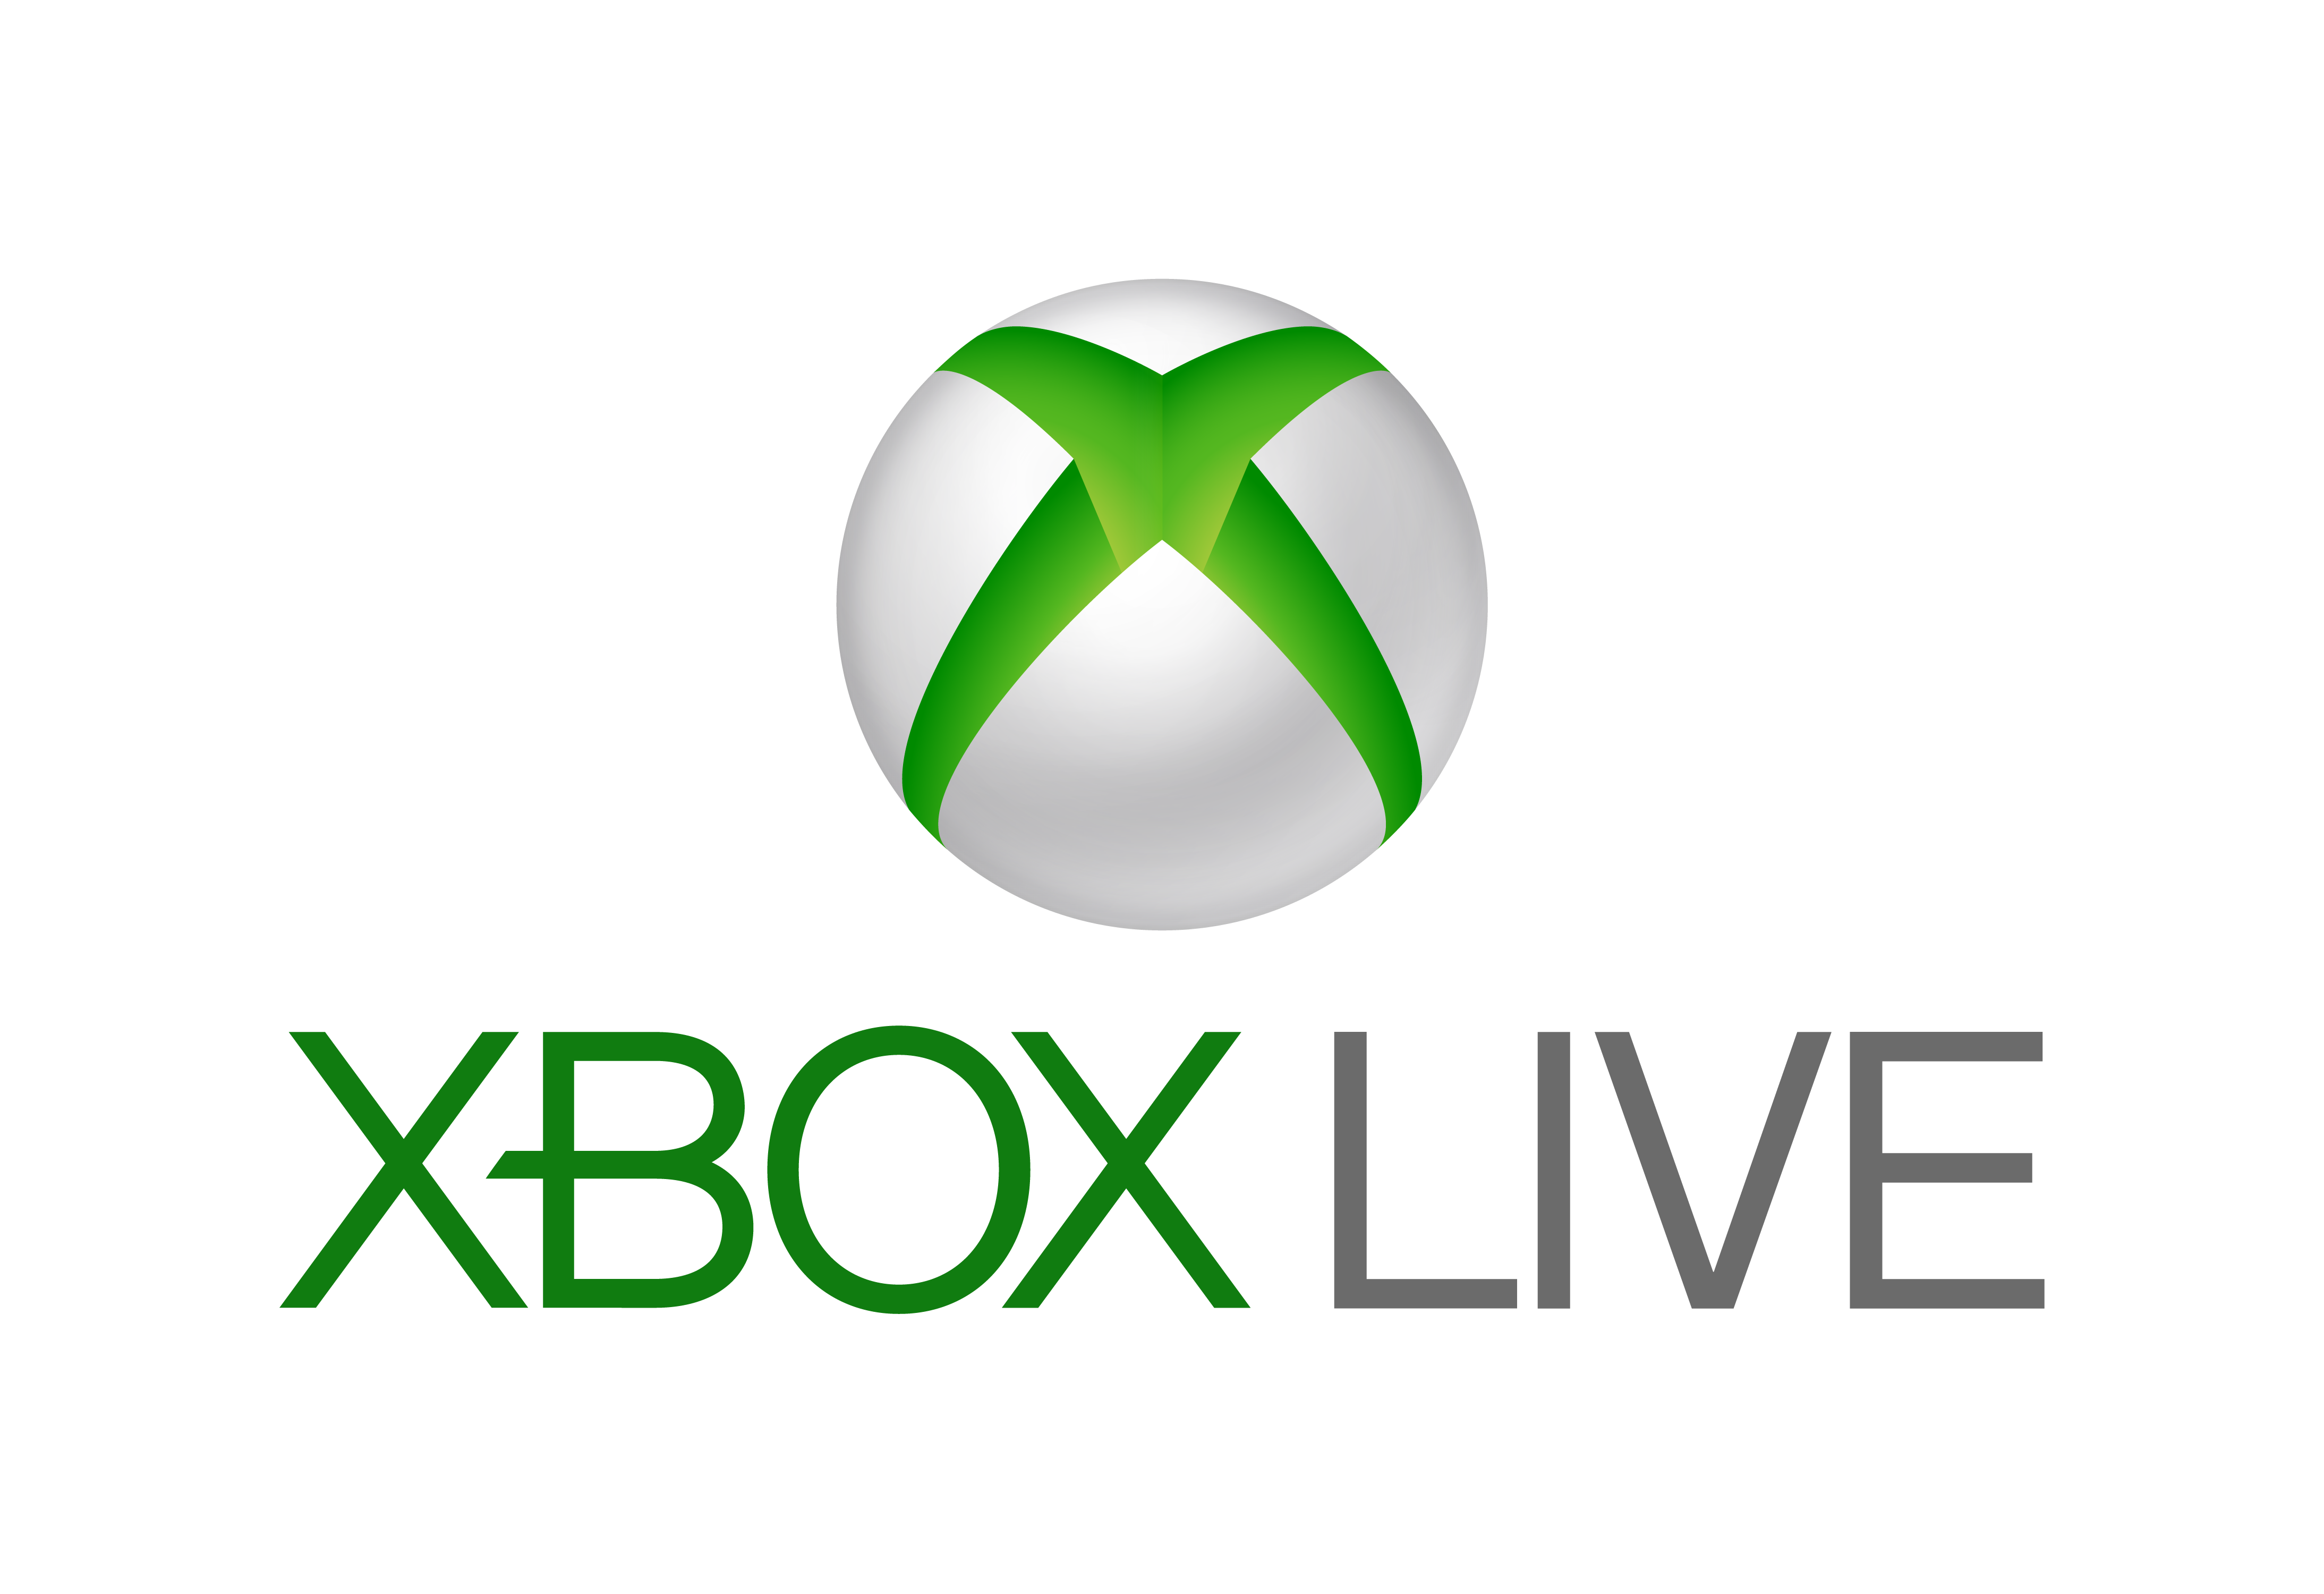 Xbox Live Experiencing Issues With Purchase and Content